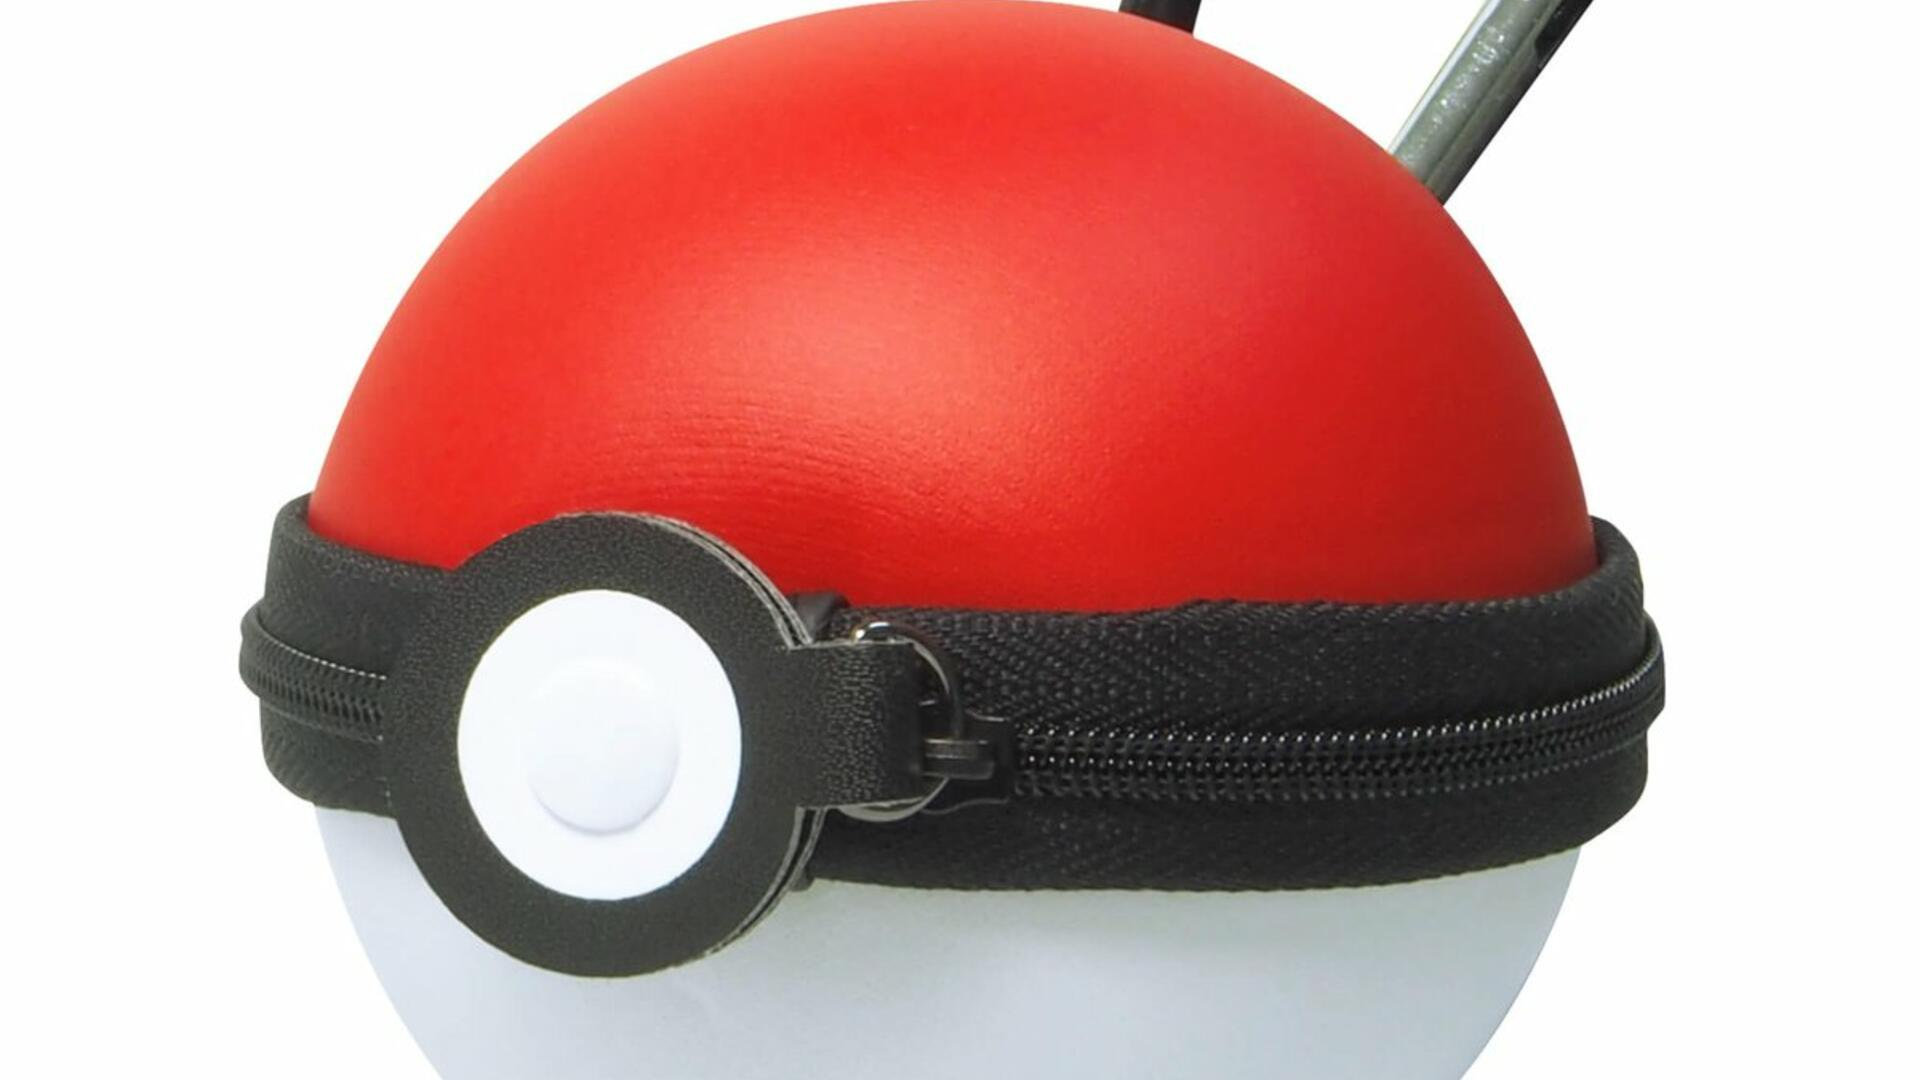 Hori's Lineup of Poke Ball Accessories Include Holders, Cases, and a Nifty Charger